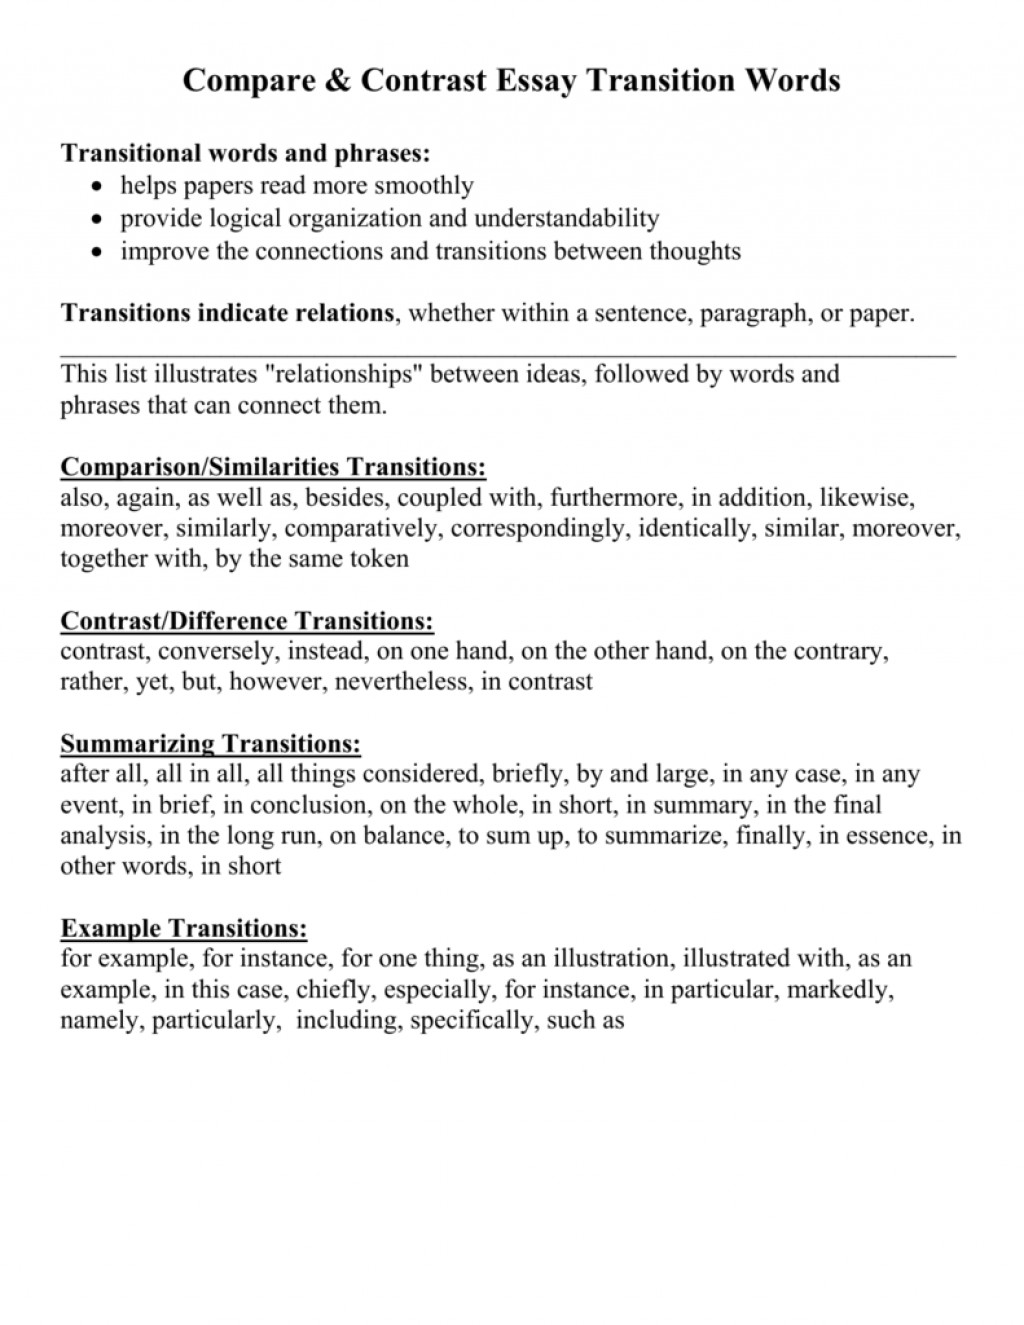 016 Essay Example Contrast Transition Words For Essays Compares 006840377 1 To Start Fantastic Comparison Topics Middle School Compare Title Ideas Thesis Large